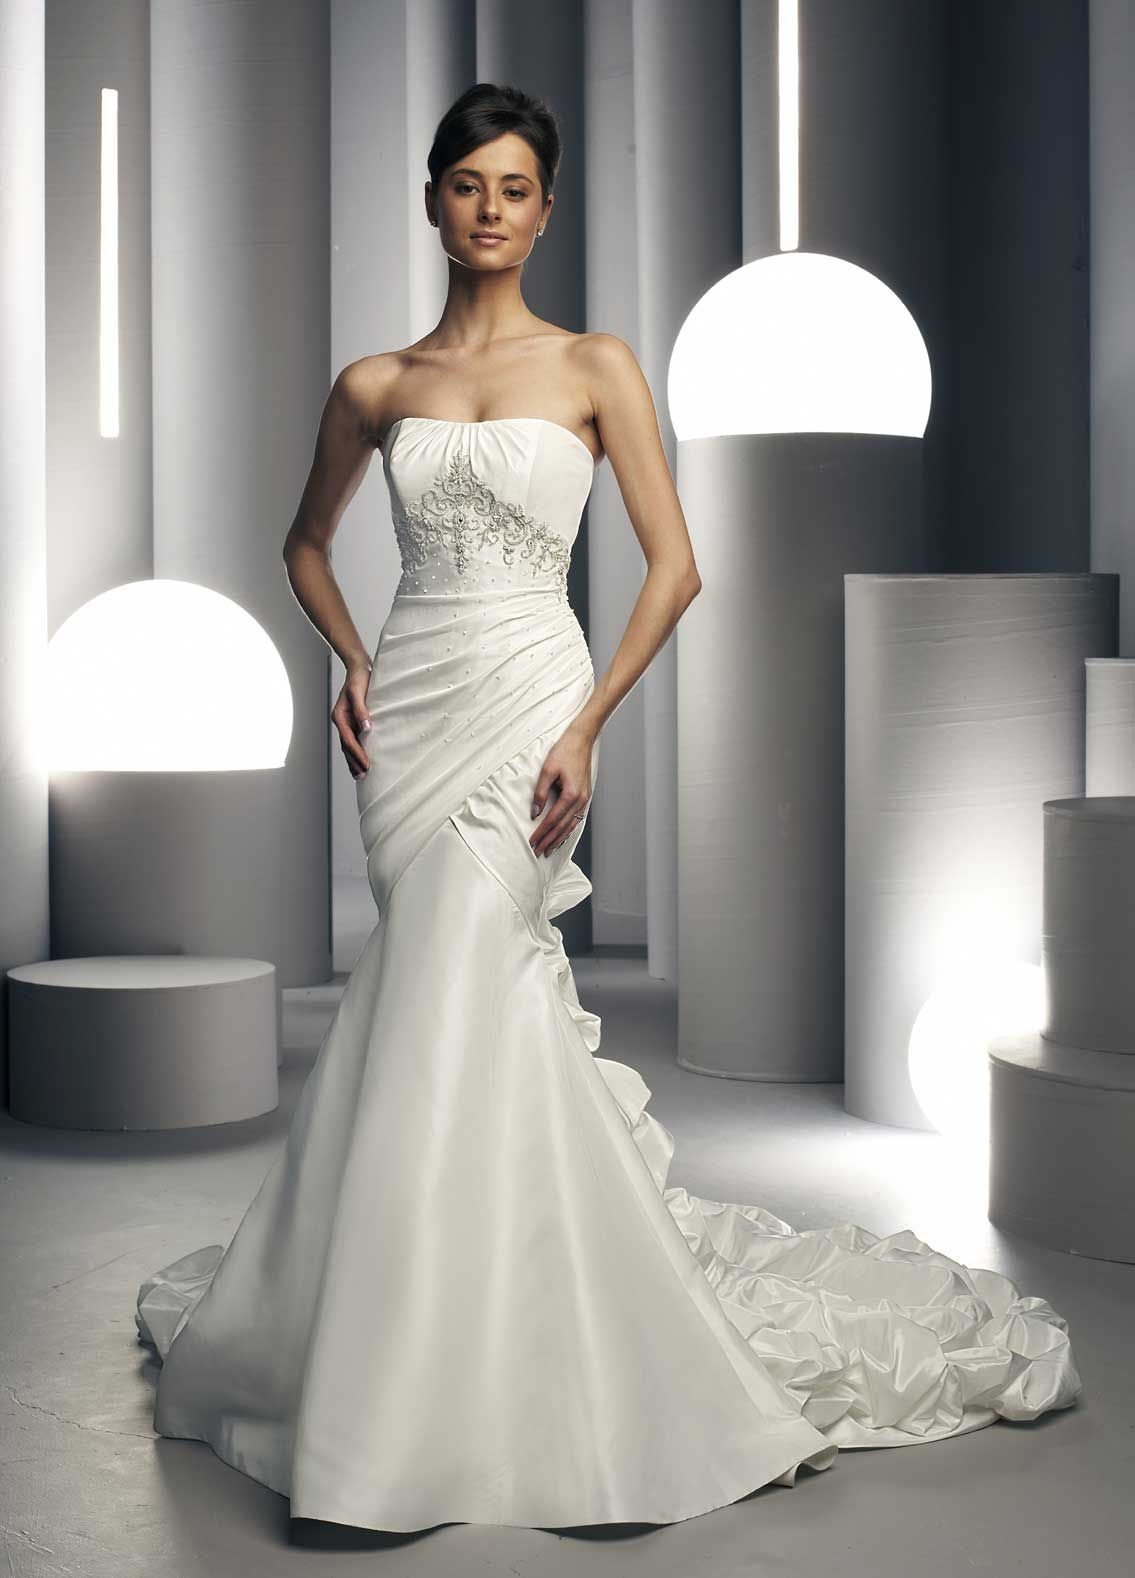 White Wedding Dresses | White Bridal's Dresses Designs | long ...